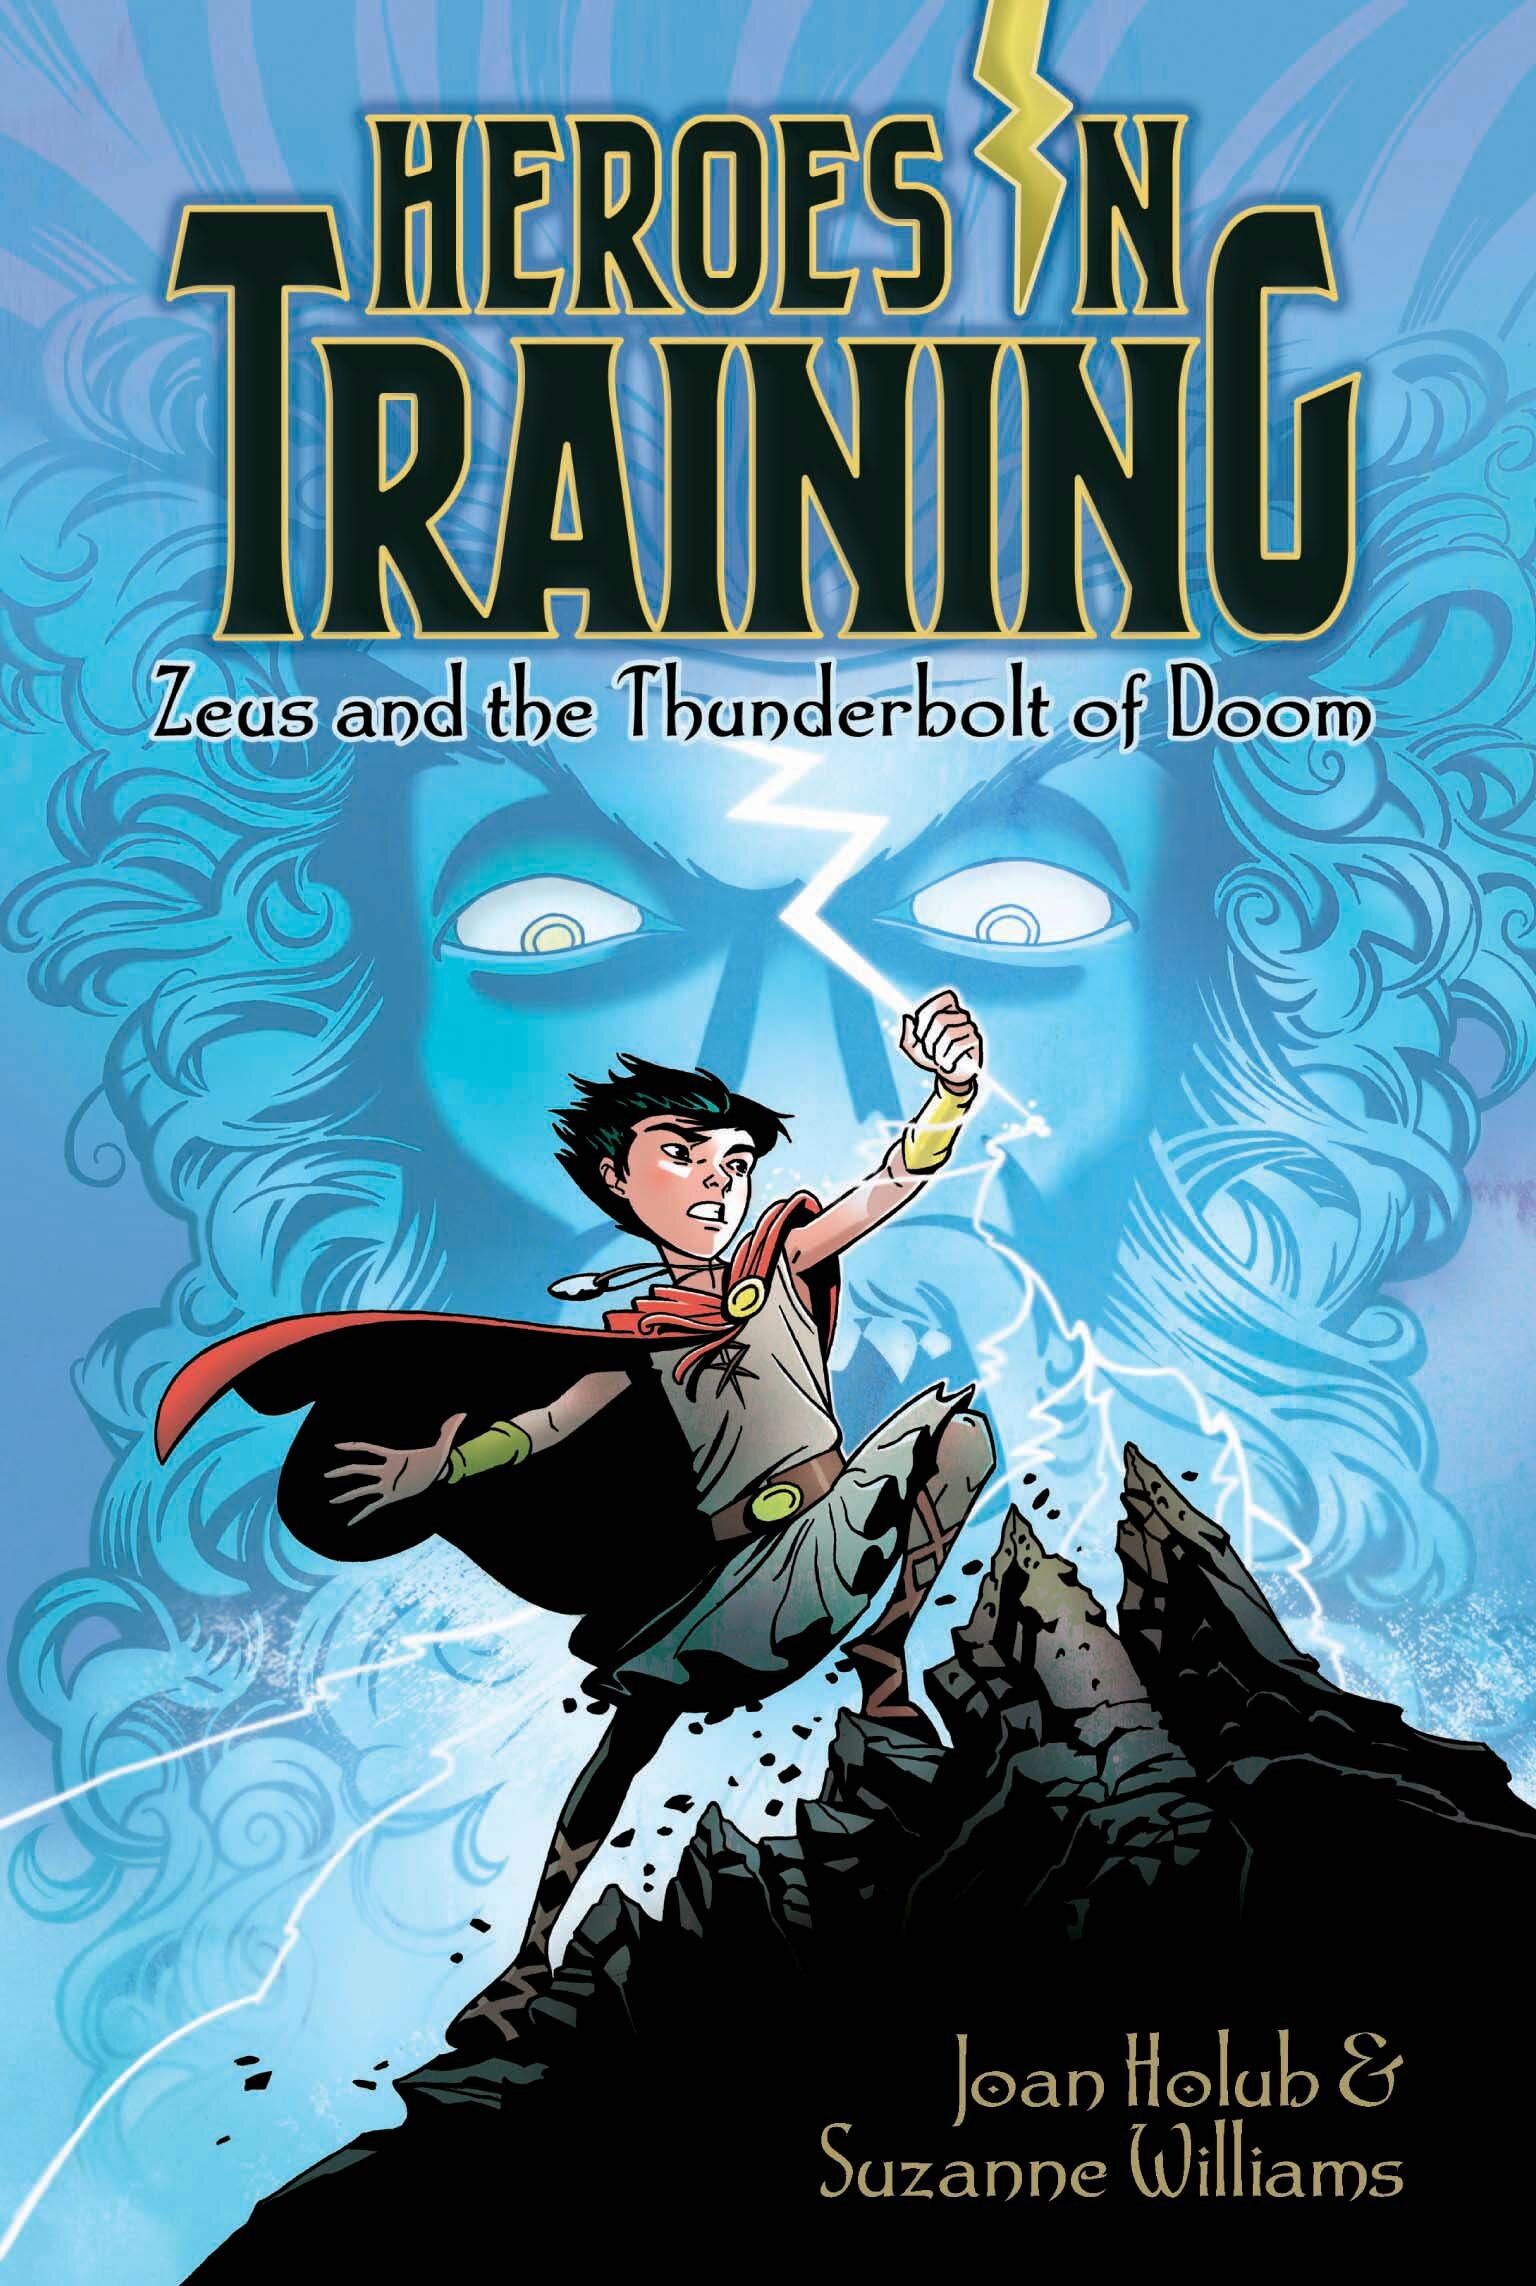 Heroes In Training book series (ages 6-10)